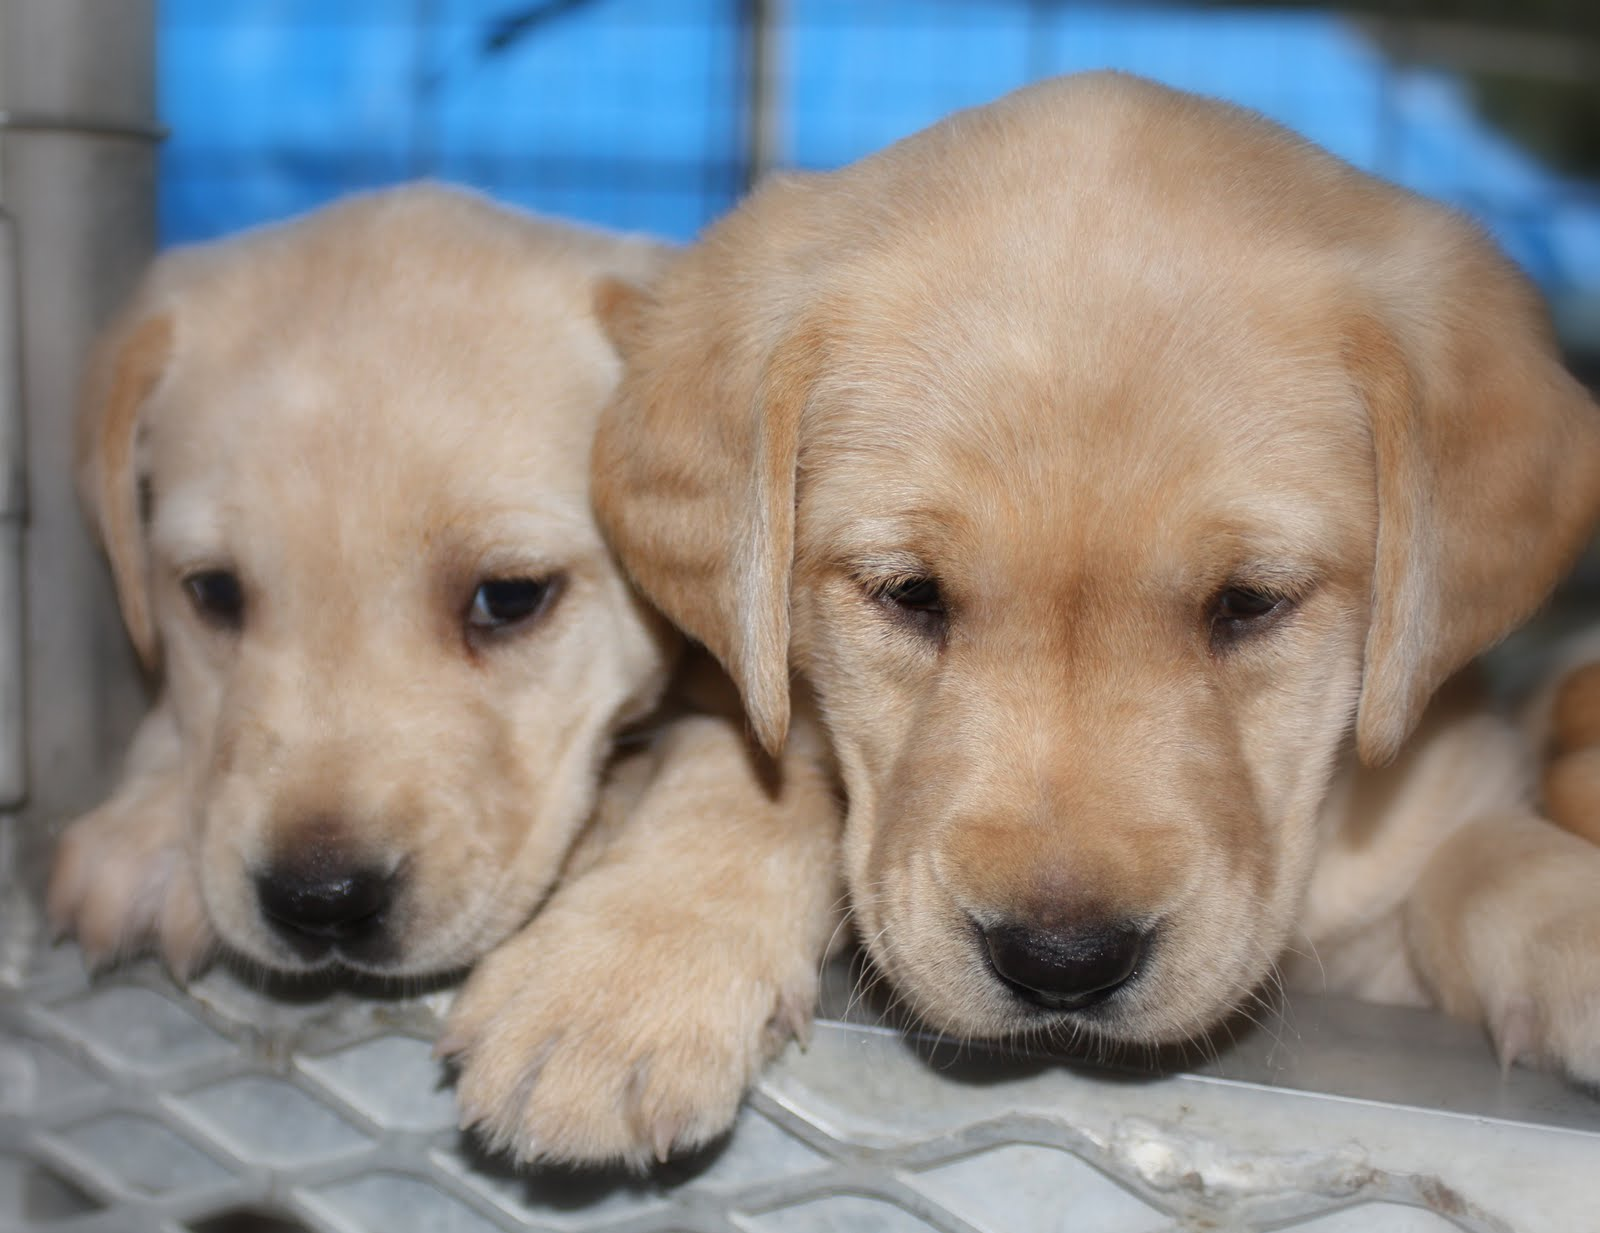 922026 Yellow Labrador Retriever Puppies 922068 Yellow Labrador 1600x1233